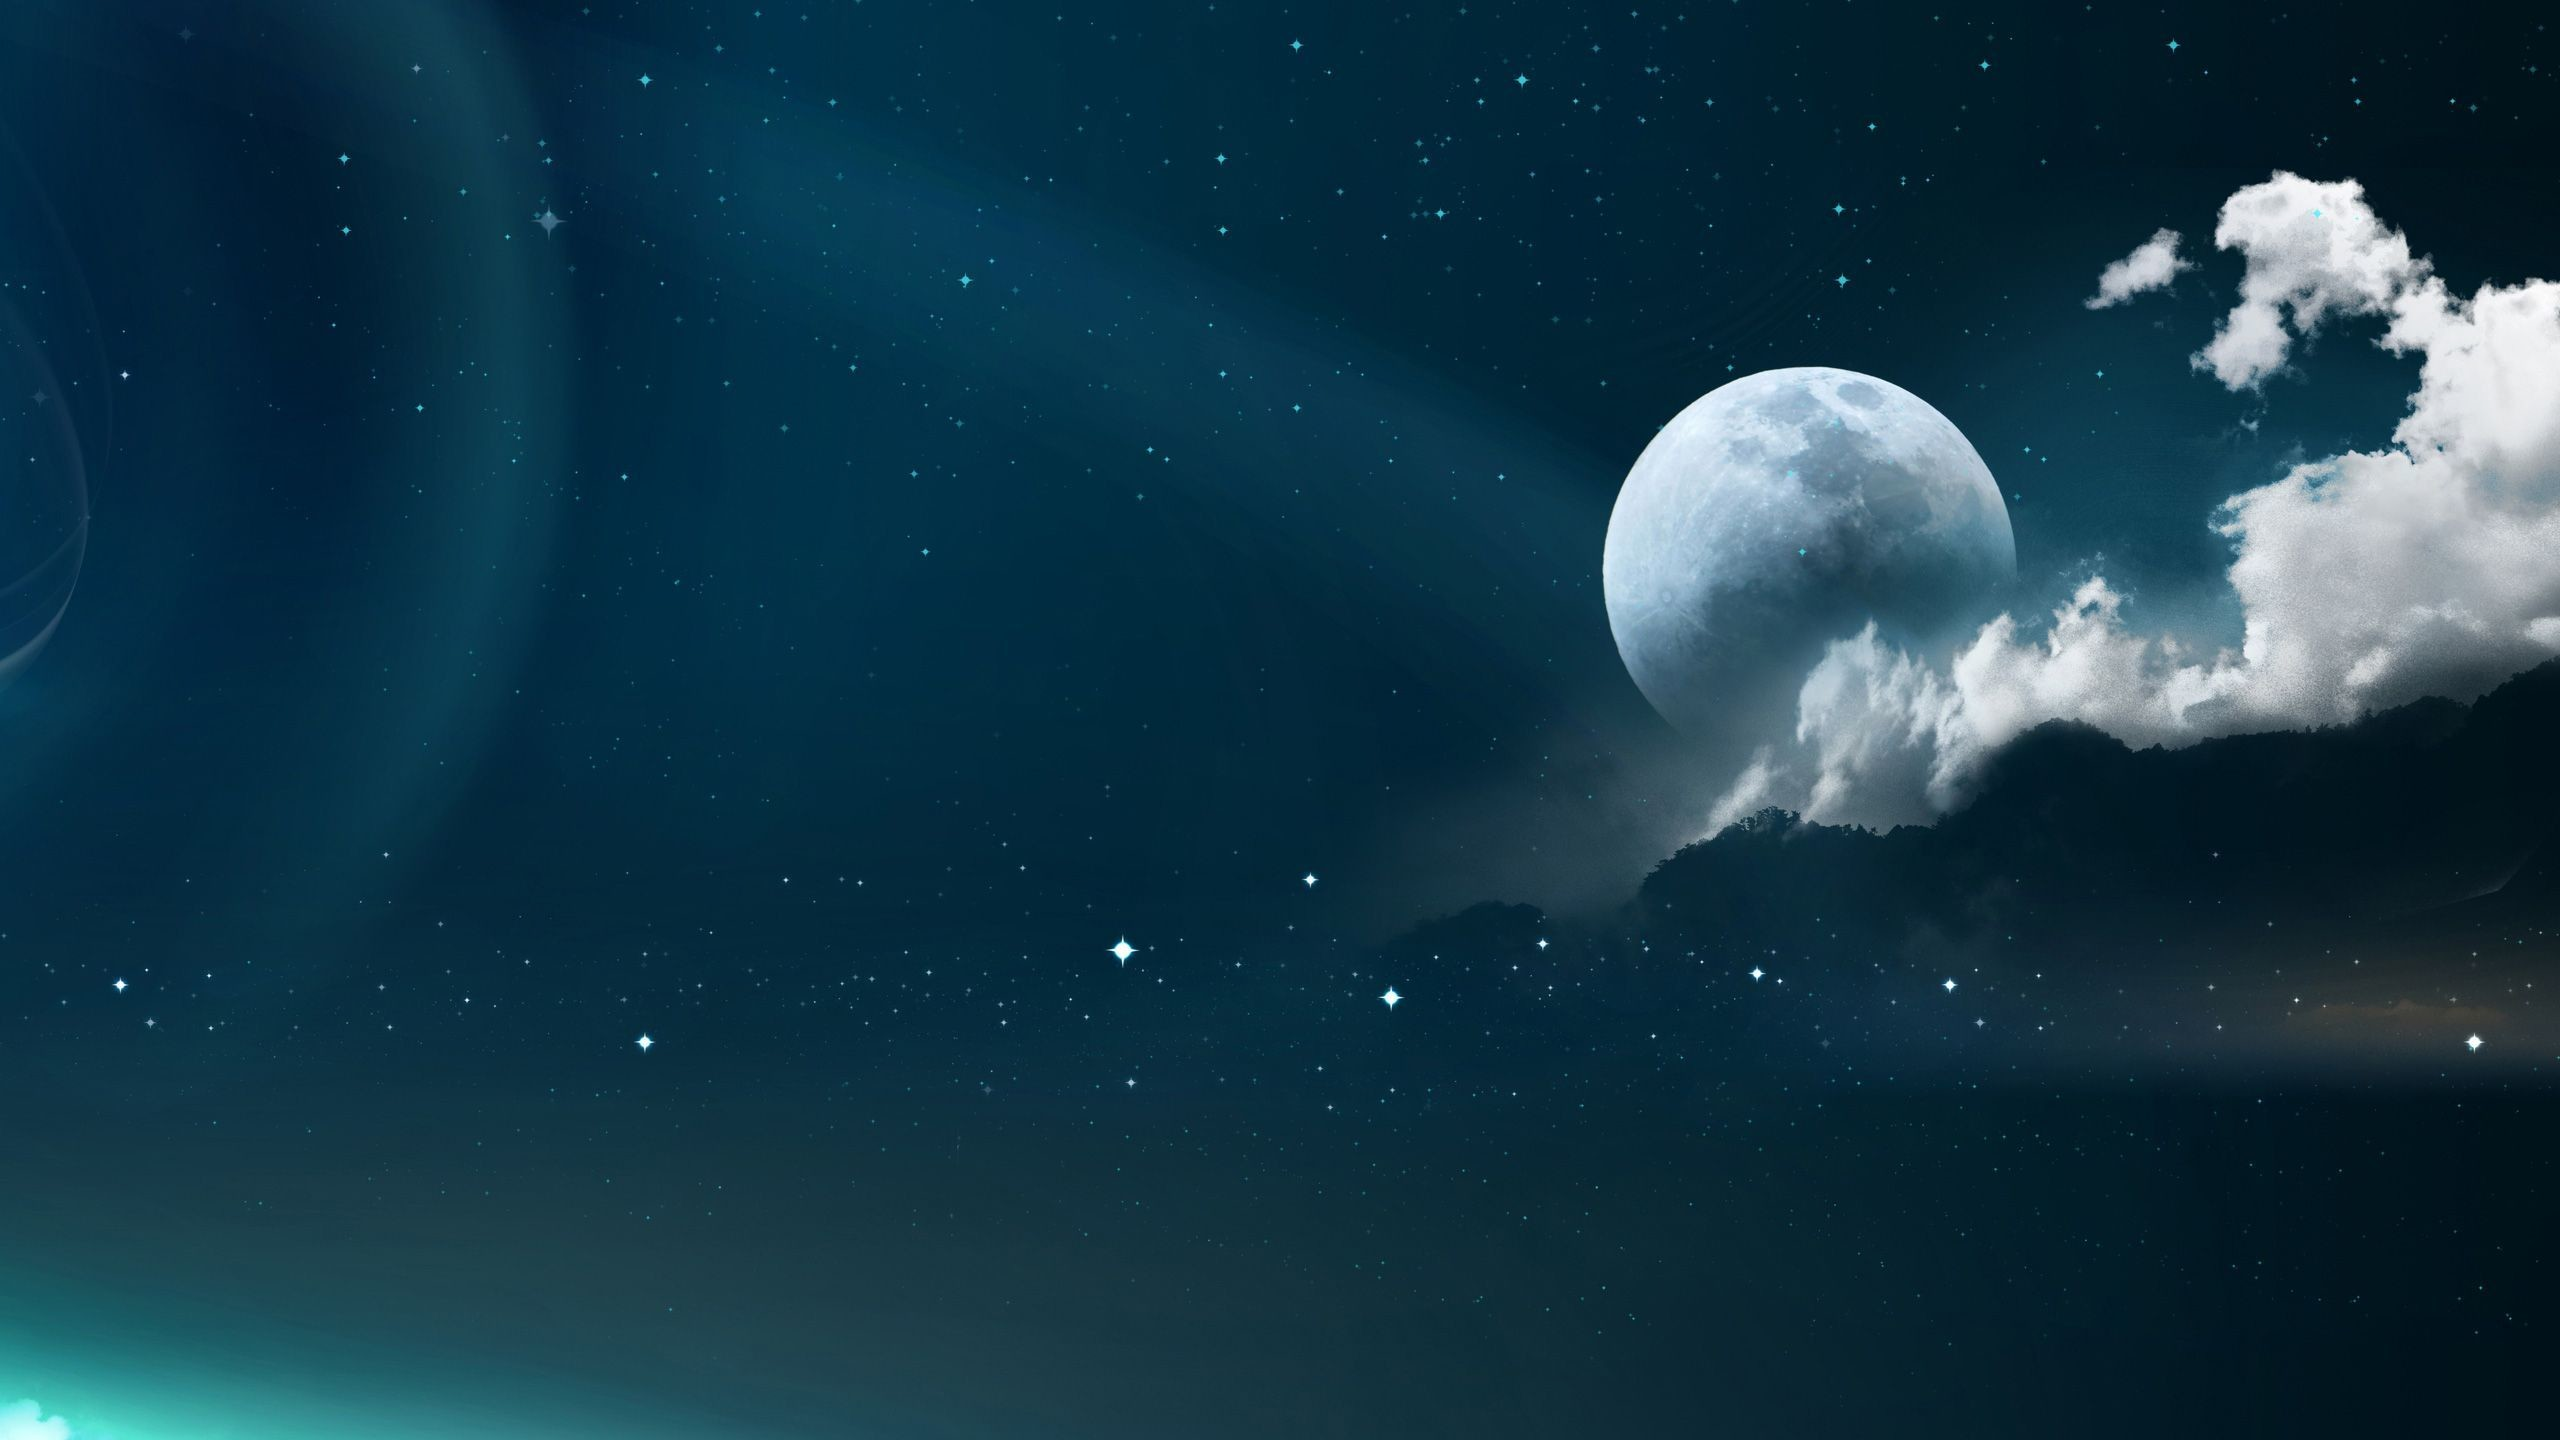 2560x1440 Moon and stars Wallpaper 1497